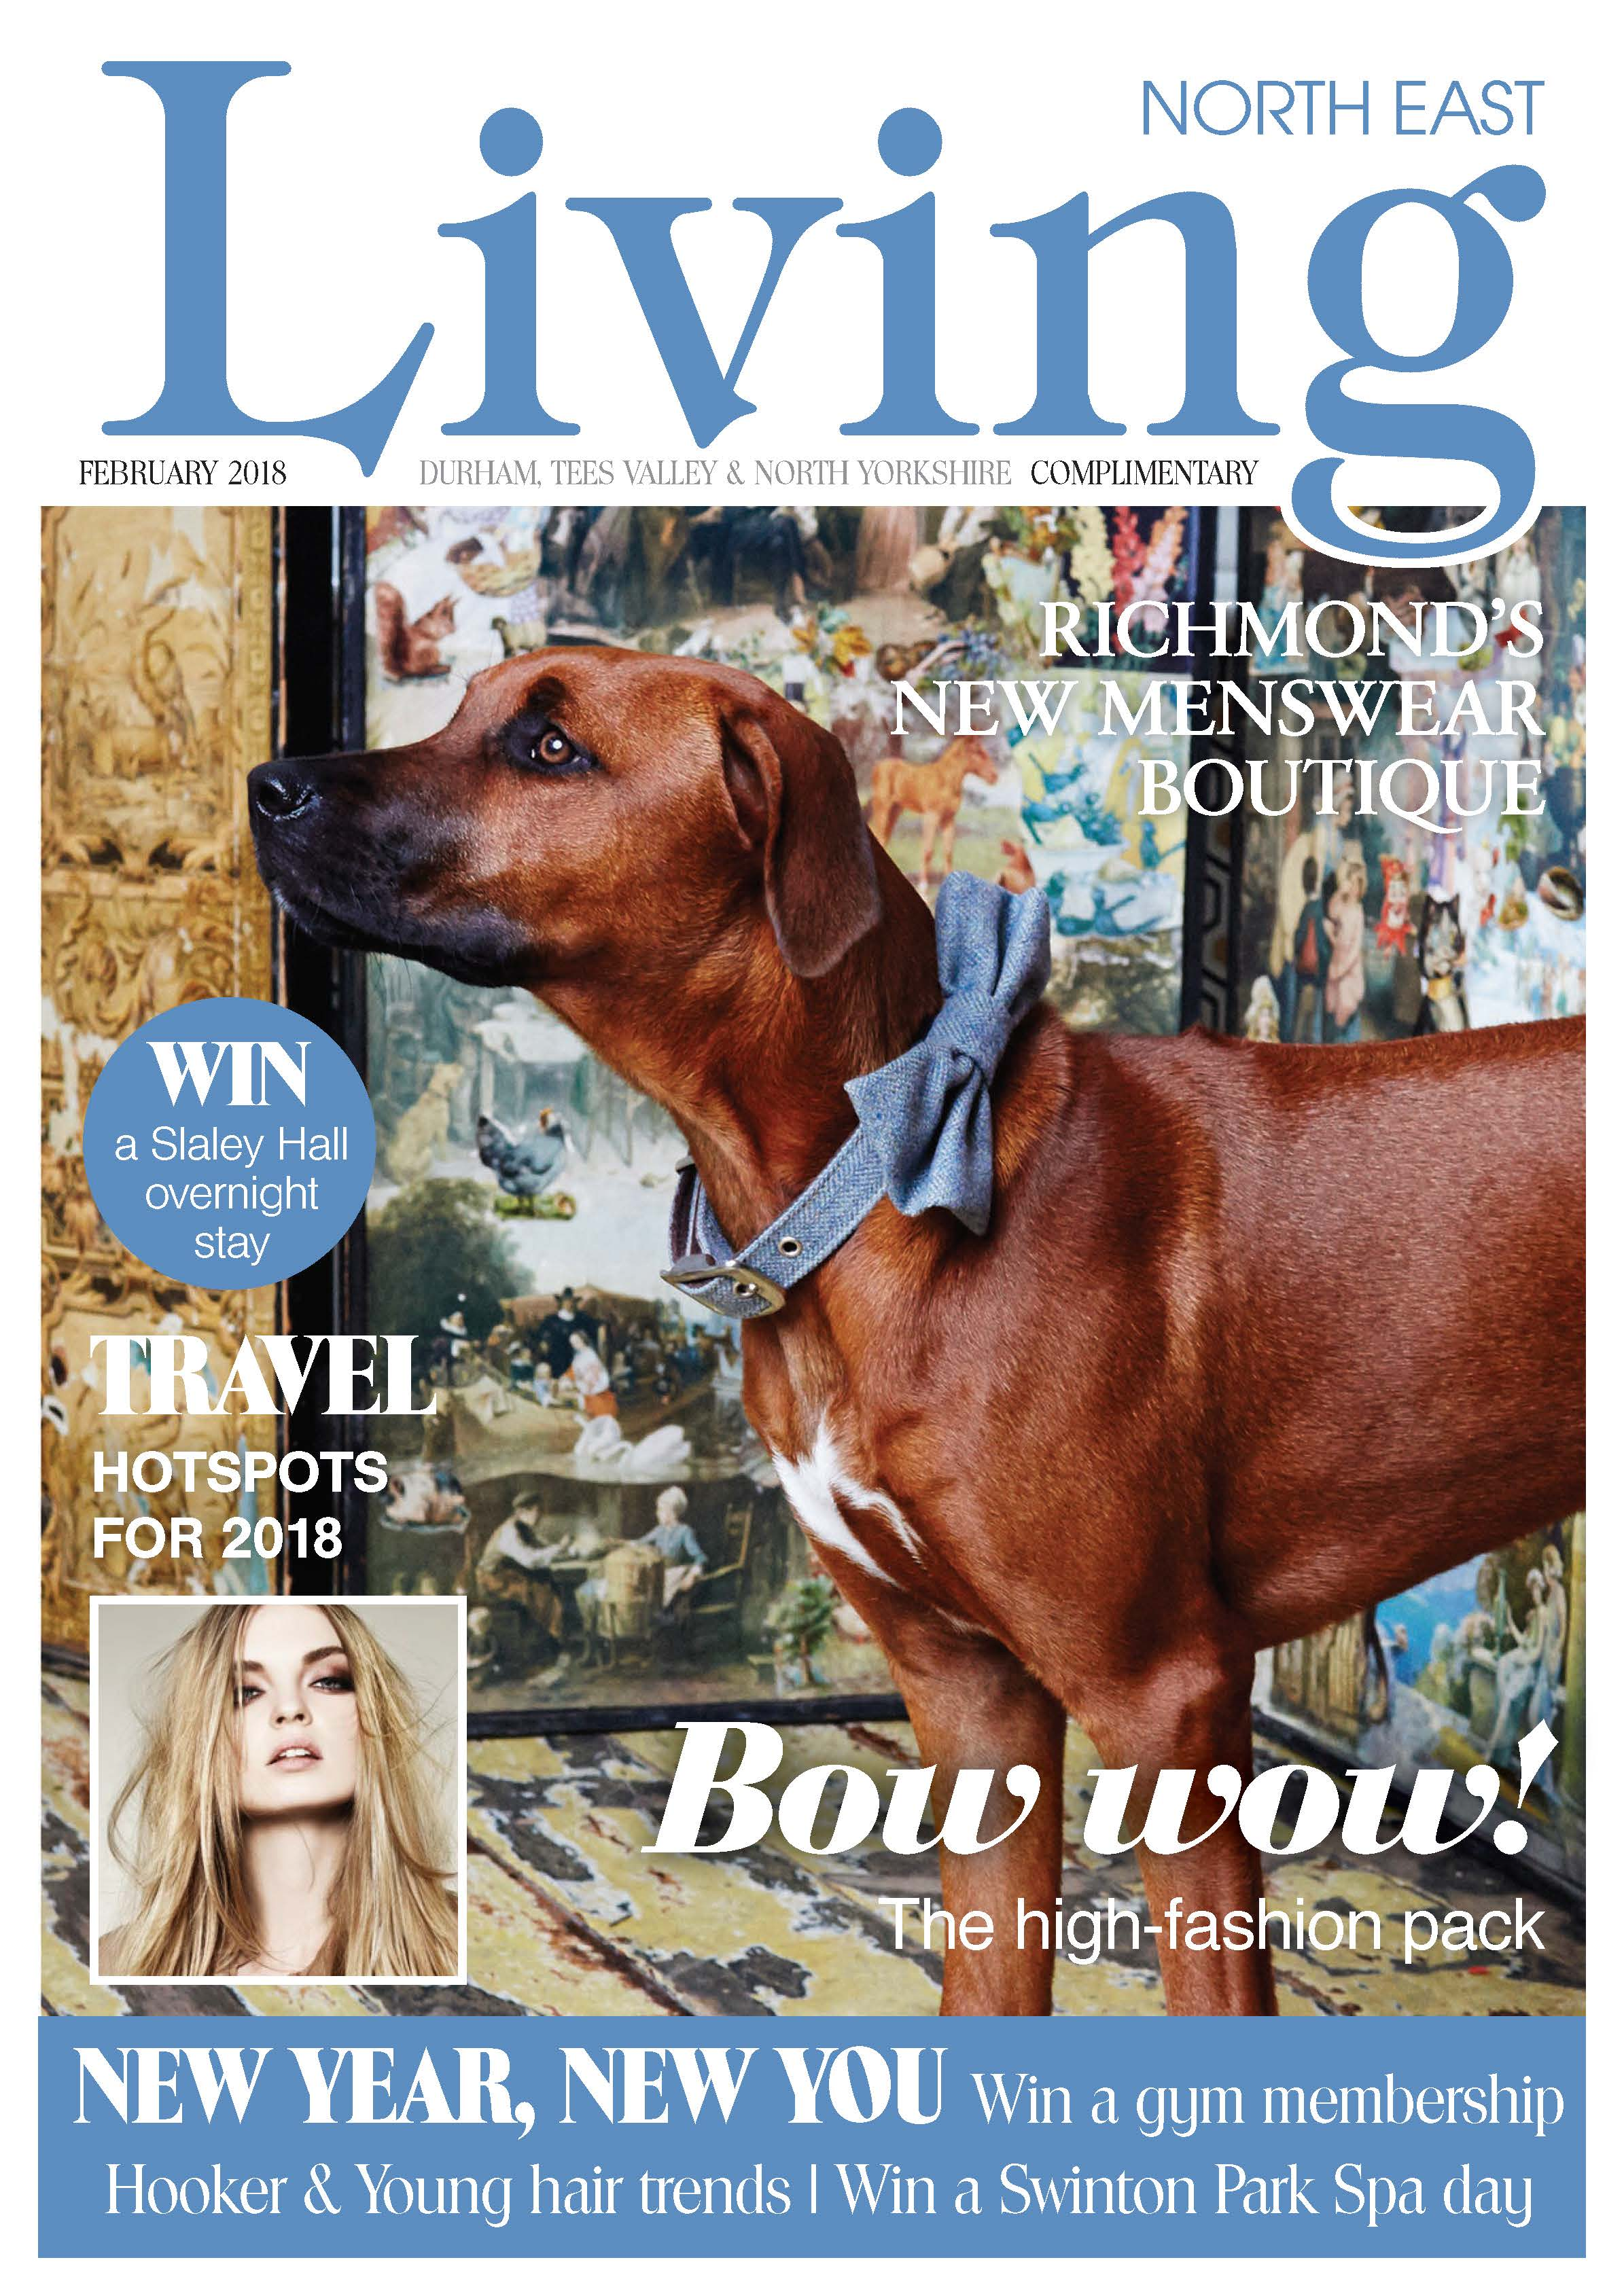 dog, dogs, style, magazine, press, editorial, northeast, living, bowtie